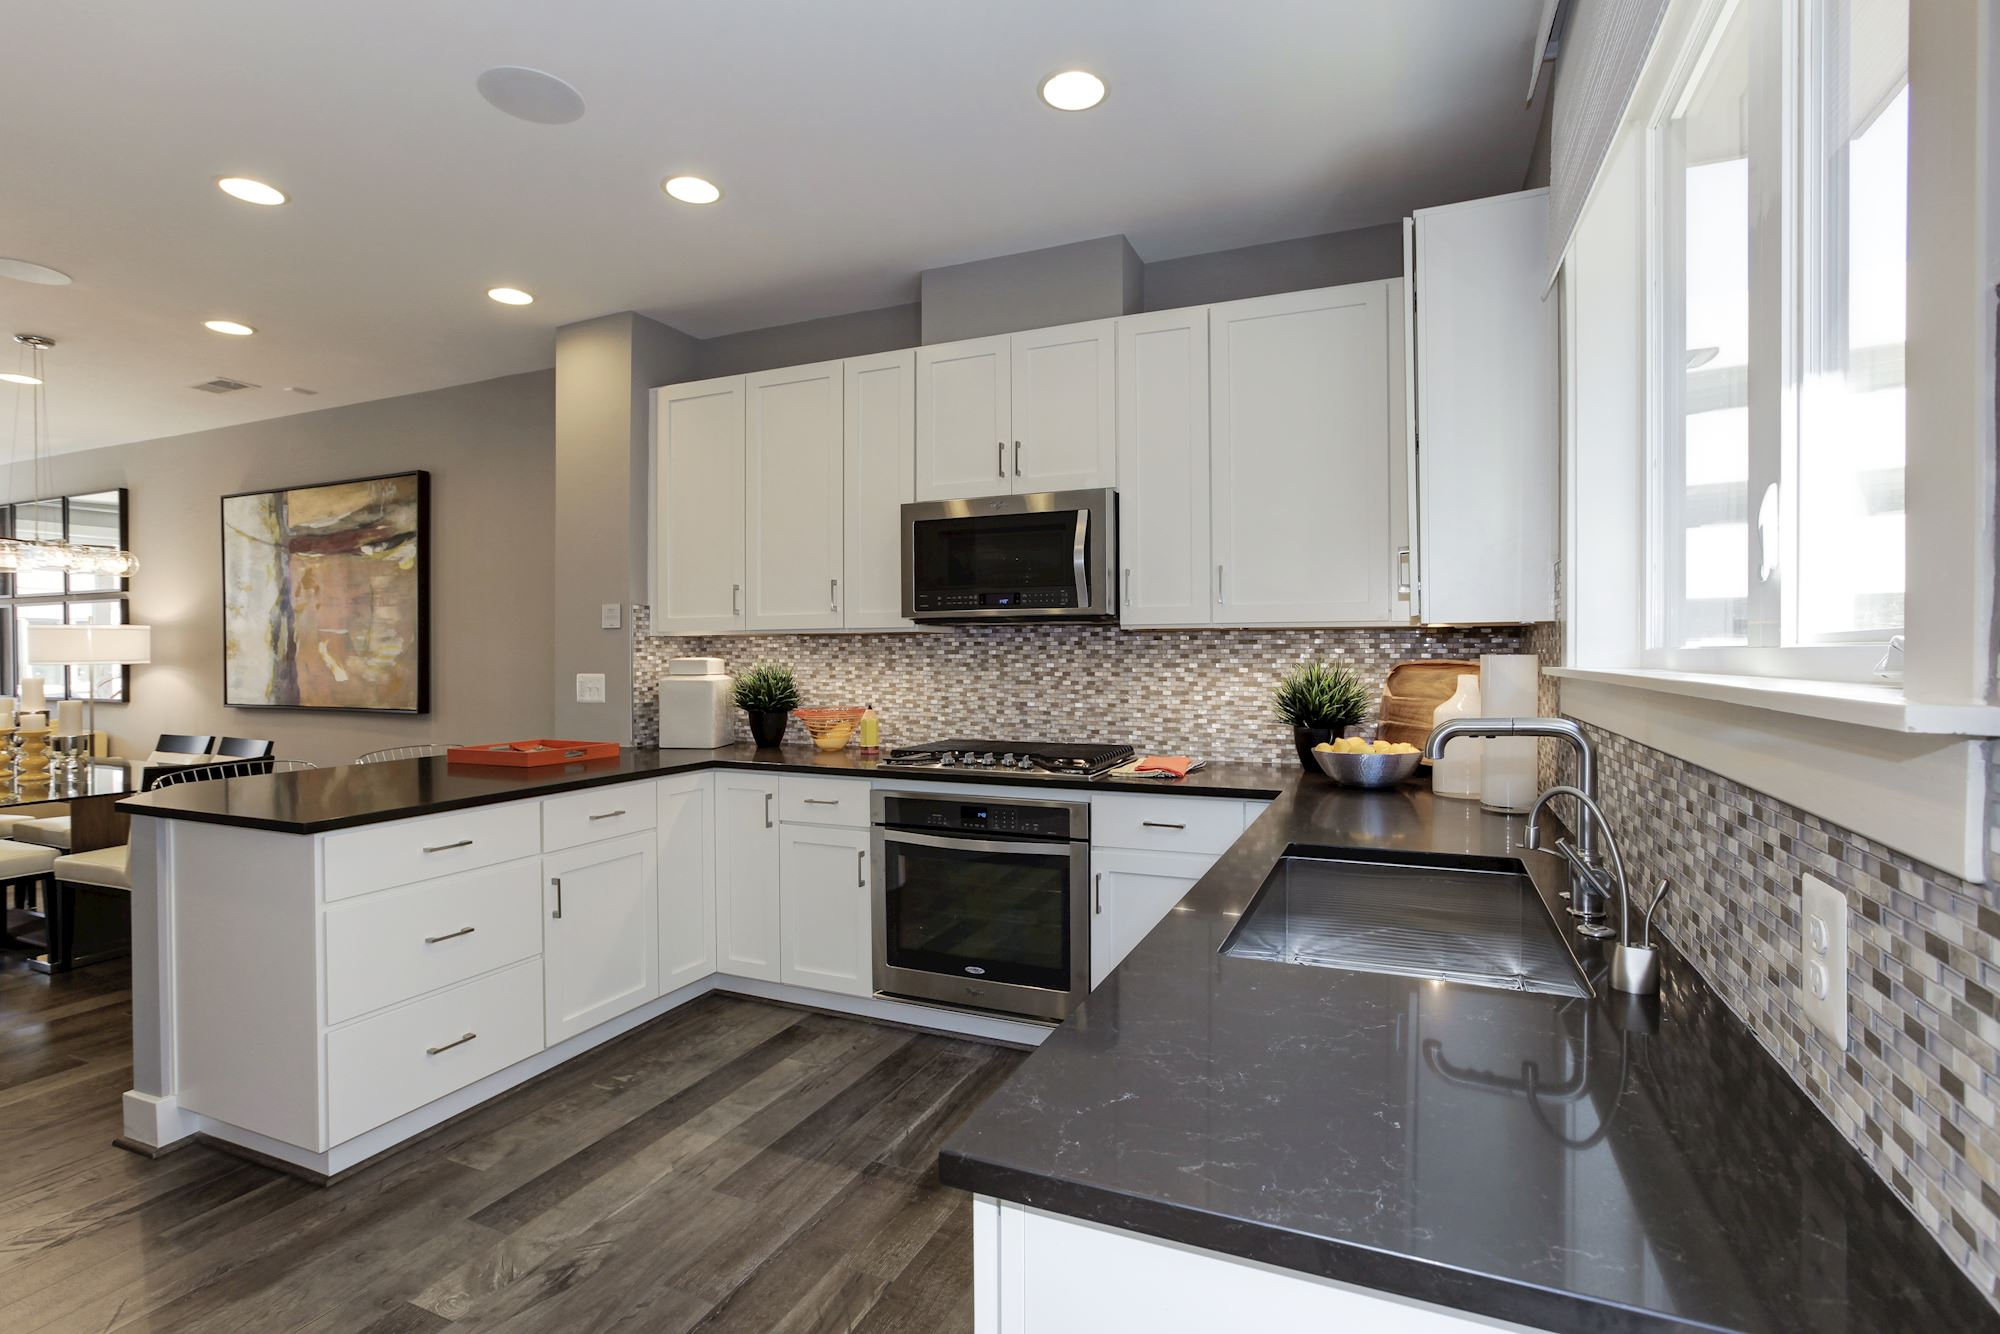 Additional photo for property listing at Montgomery Row Townhomes By Eya-The Burch 6602 Eames Way Bethesda, Maryland 20817 United States